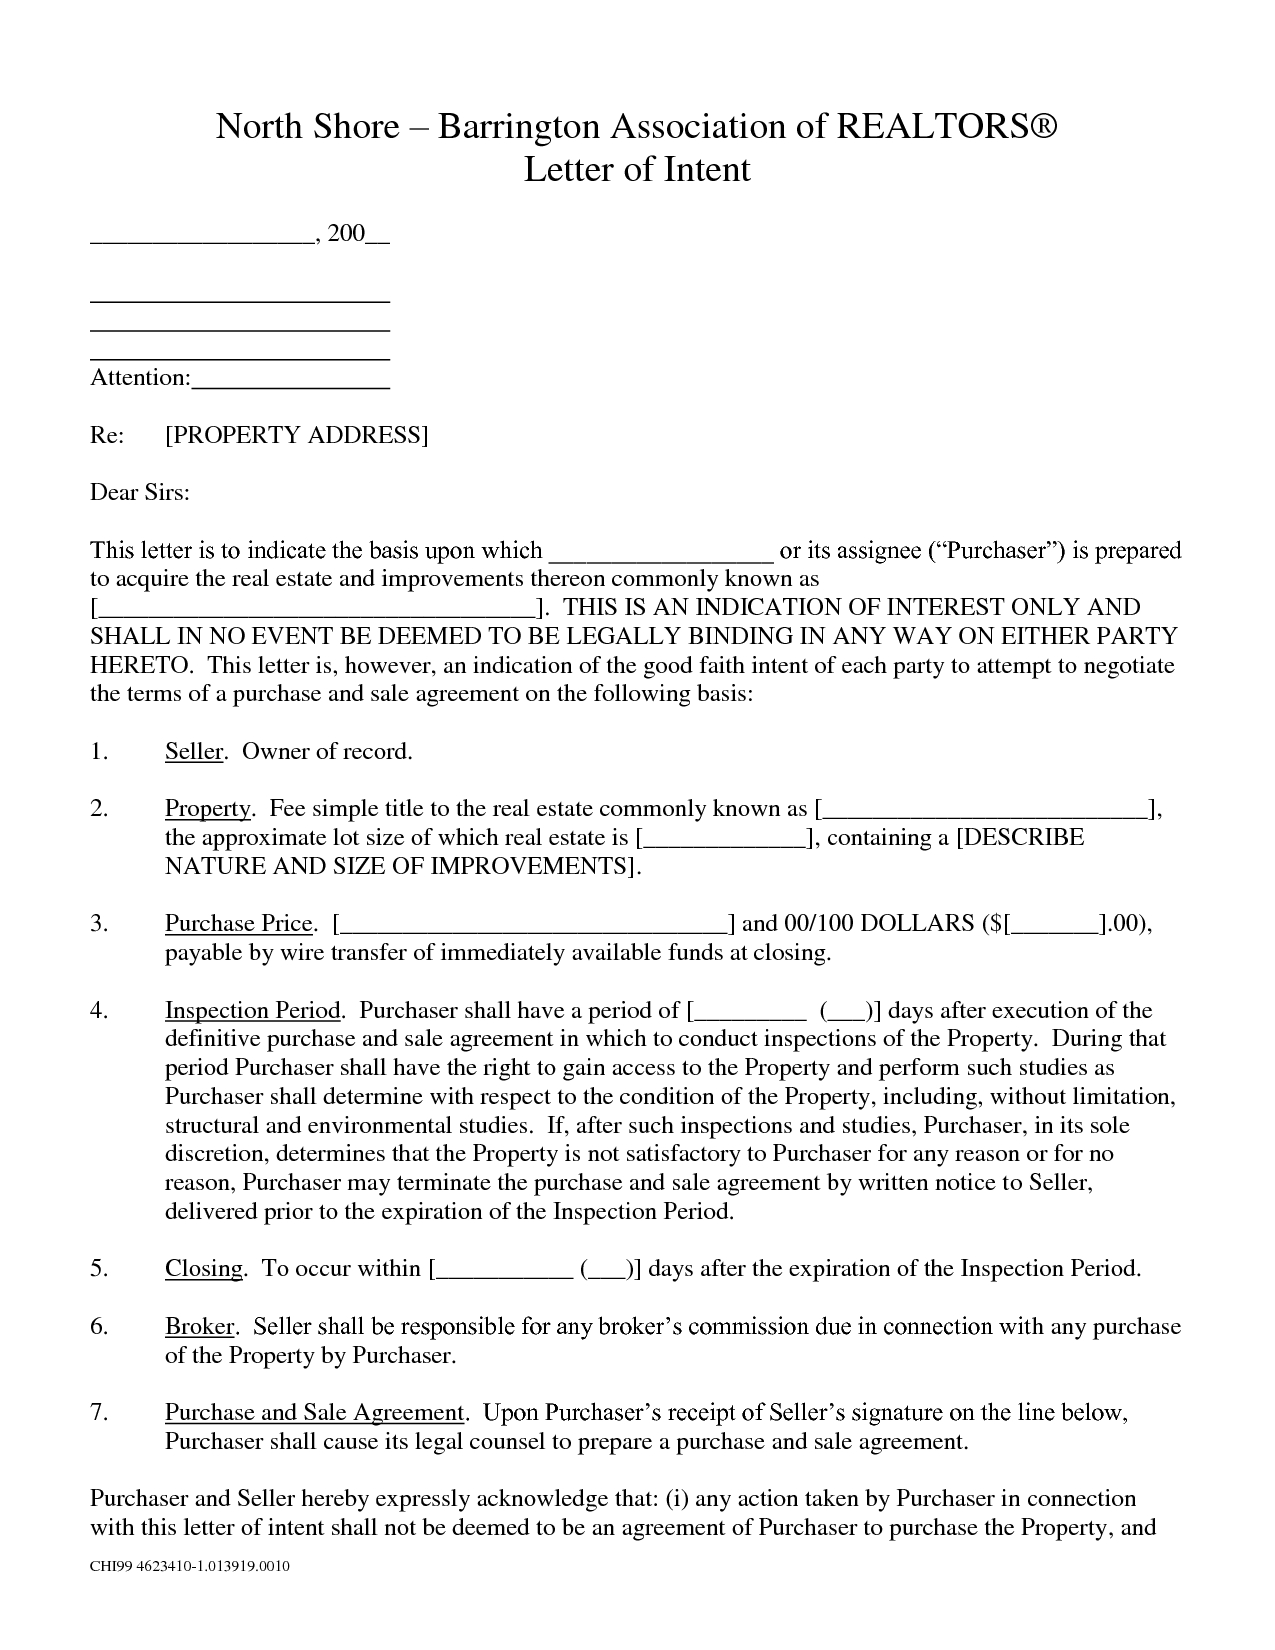 Commercial Real Estate Letter Of Intent to Purchase Template - Best S Er Intent Property Template to Purchase Real Estate